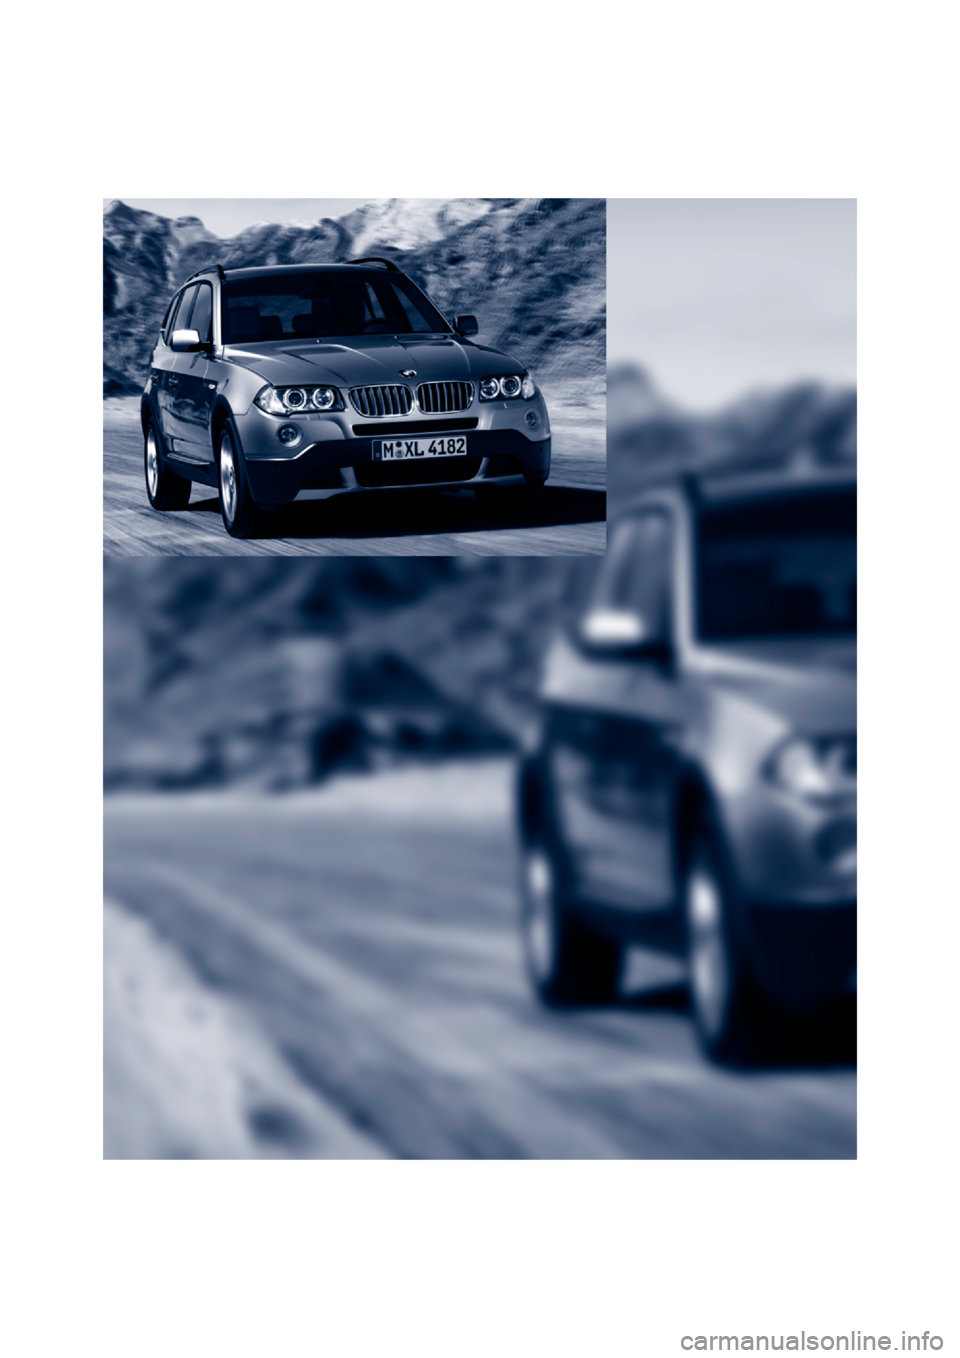 BMW X3 3.0SI 2007 E83 Owners Manual, Page 10